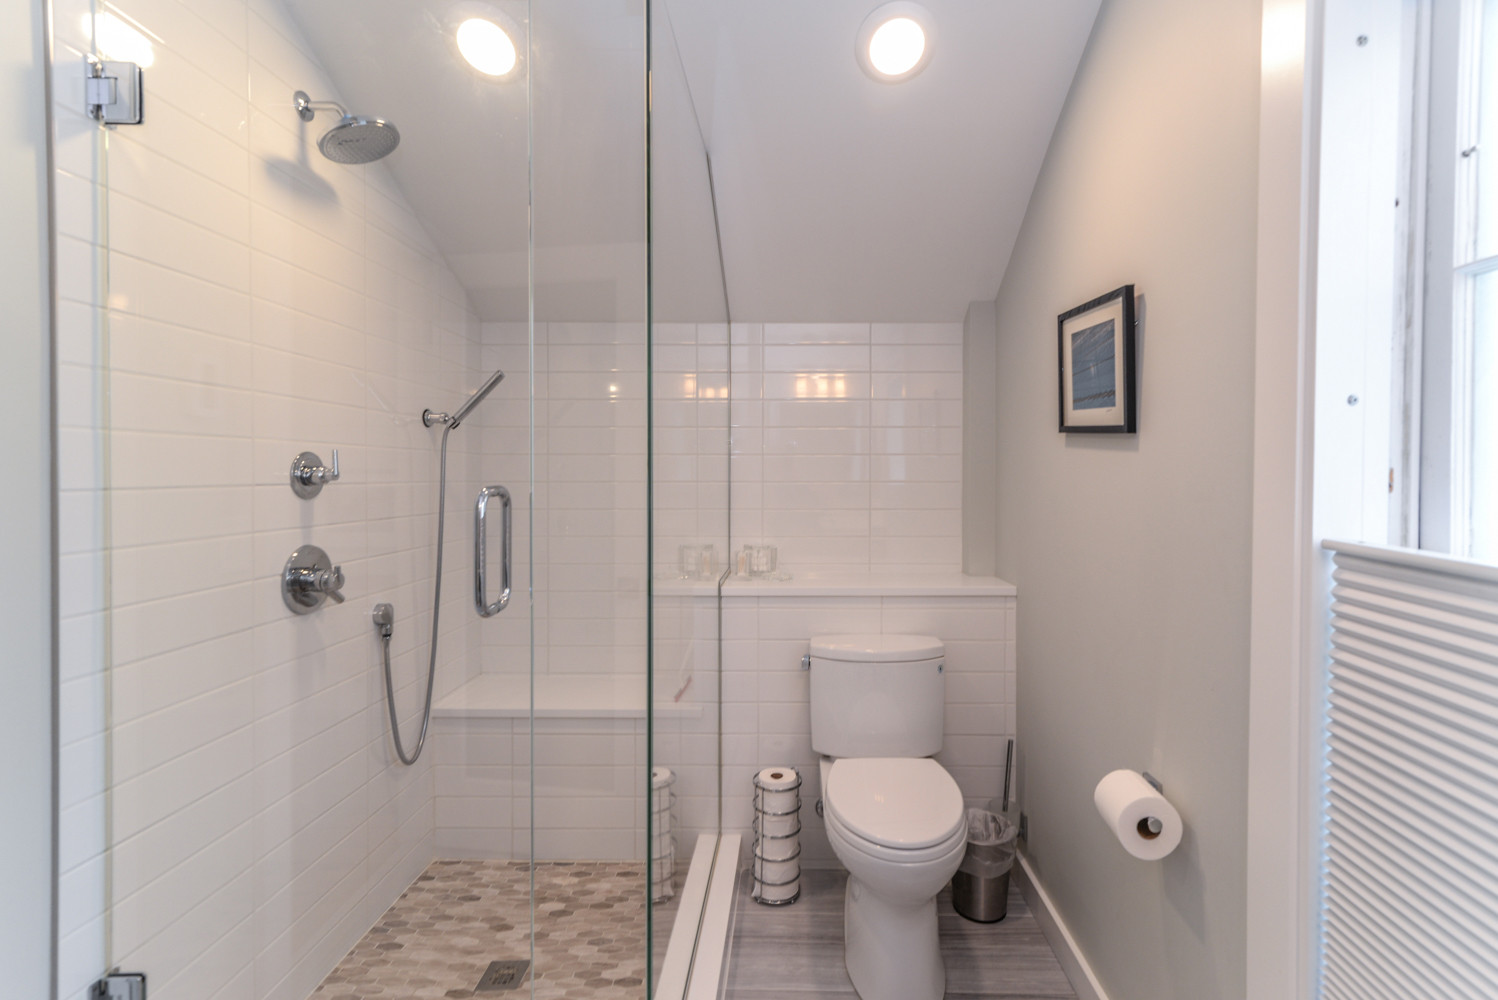 The loft bathroom packs a lot in to a smaller space. The wall tile runs the length of the bathroom to create a larger appearance, plumbing is hidden in a shelf/ledge created with a waterfall edge of q